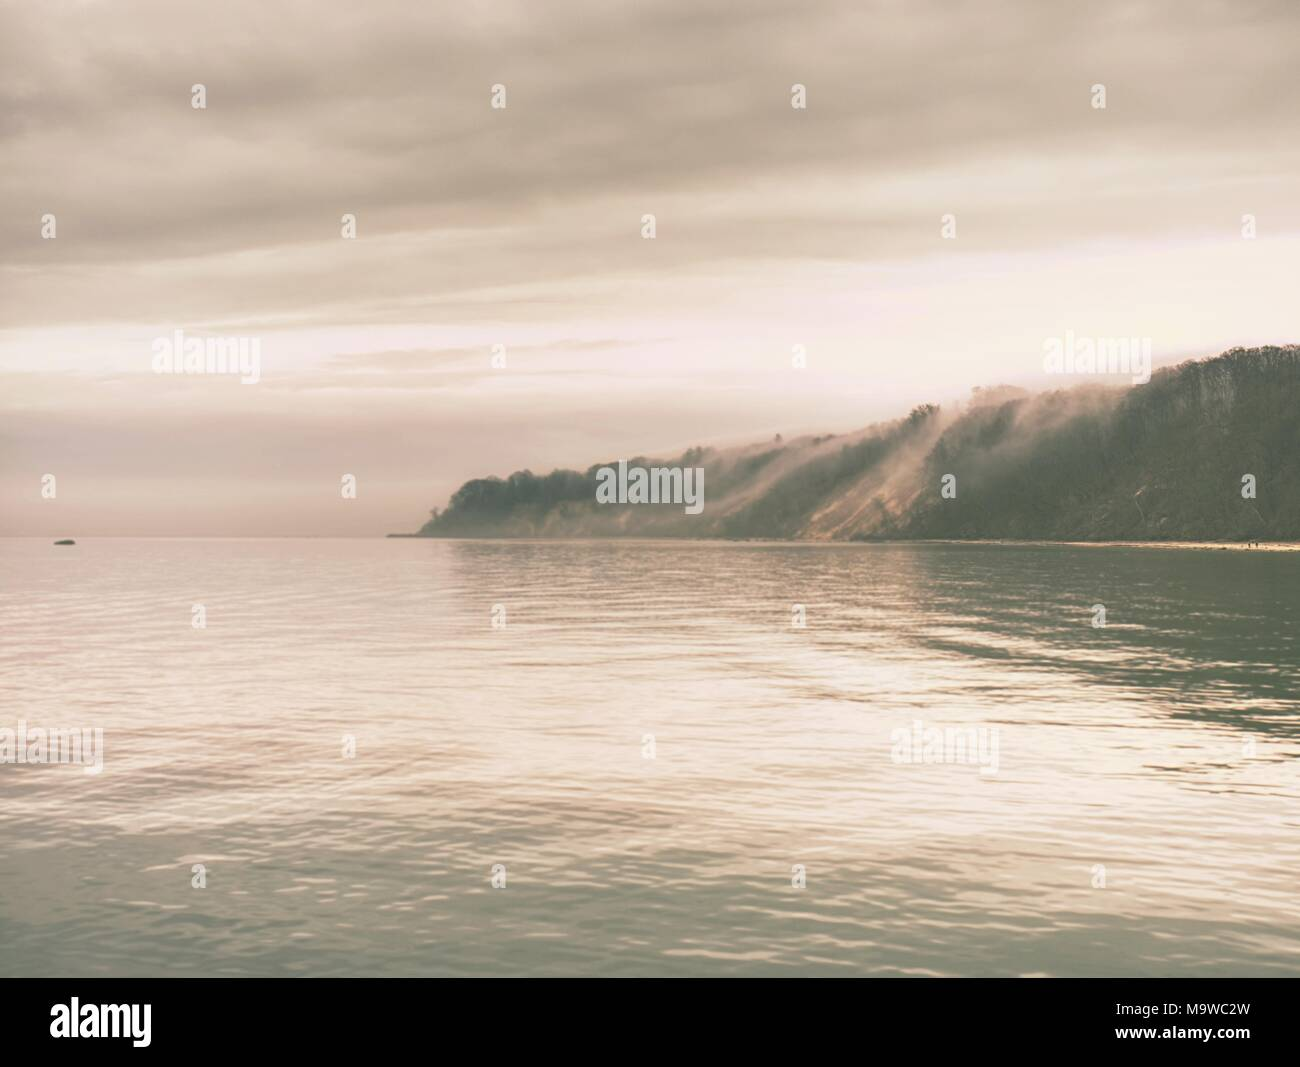 Beautiful sunset in the sea.  Low clouds, countour of landscape lost in mist. Warm colors. - Stock Image